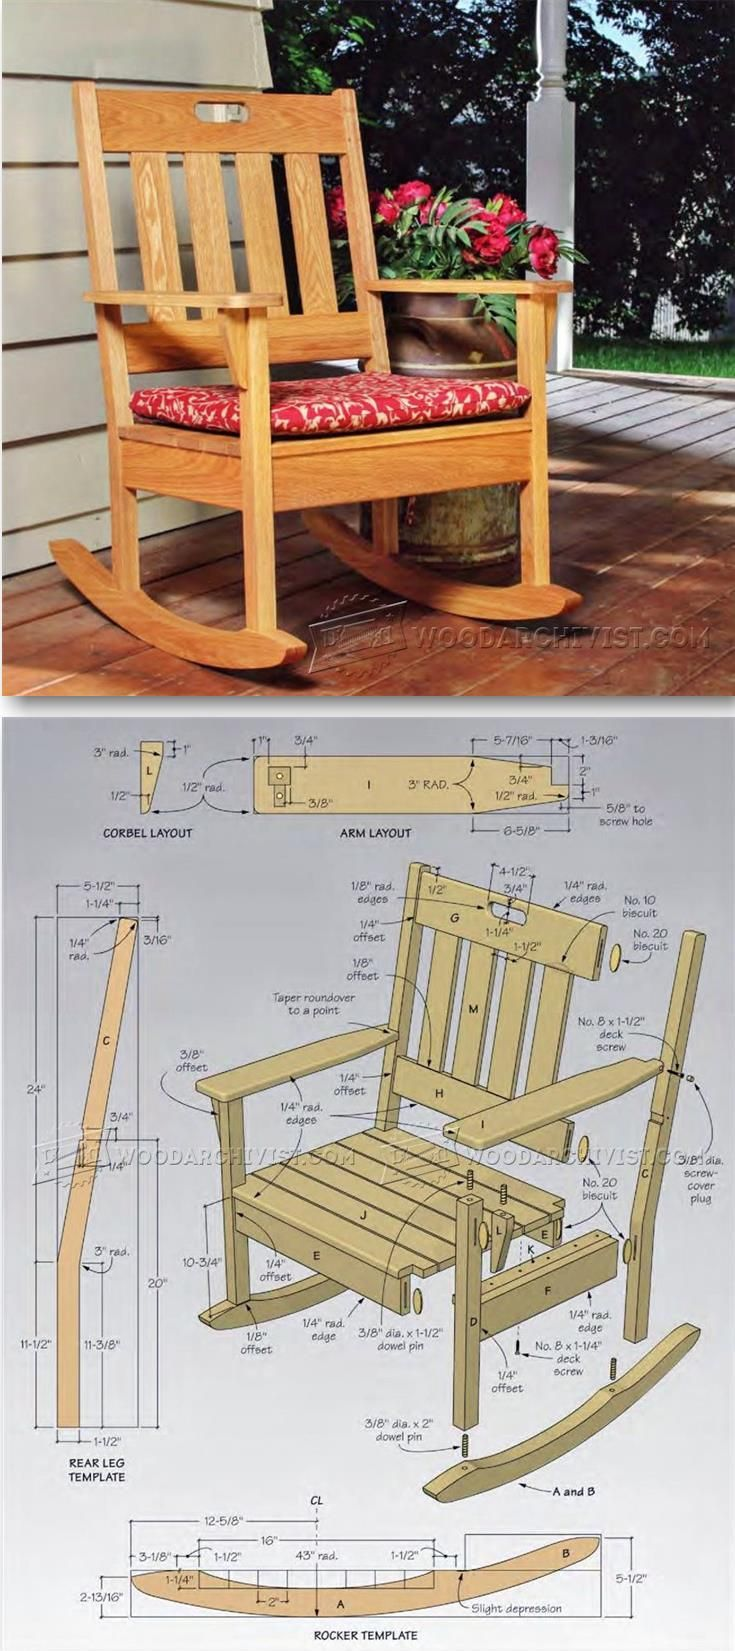 Outdoor furniture plans - Outdoor Rocking Chair Outdoor Furniture Plans And Projects Woodarchivist Com